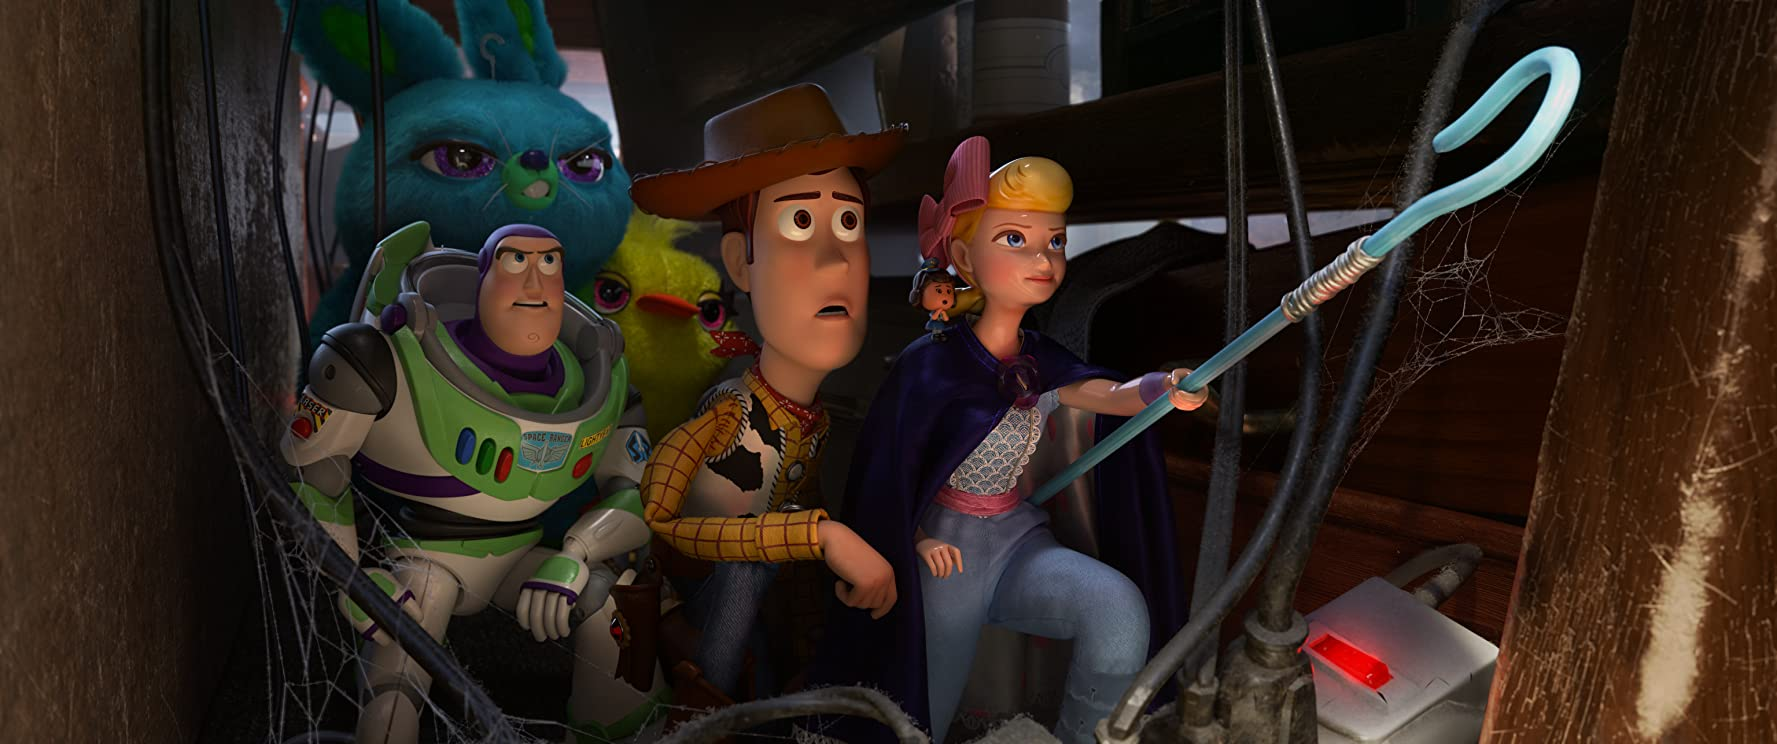 A Joyful Addition to the Toy Story franchise